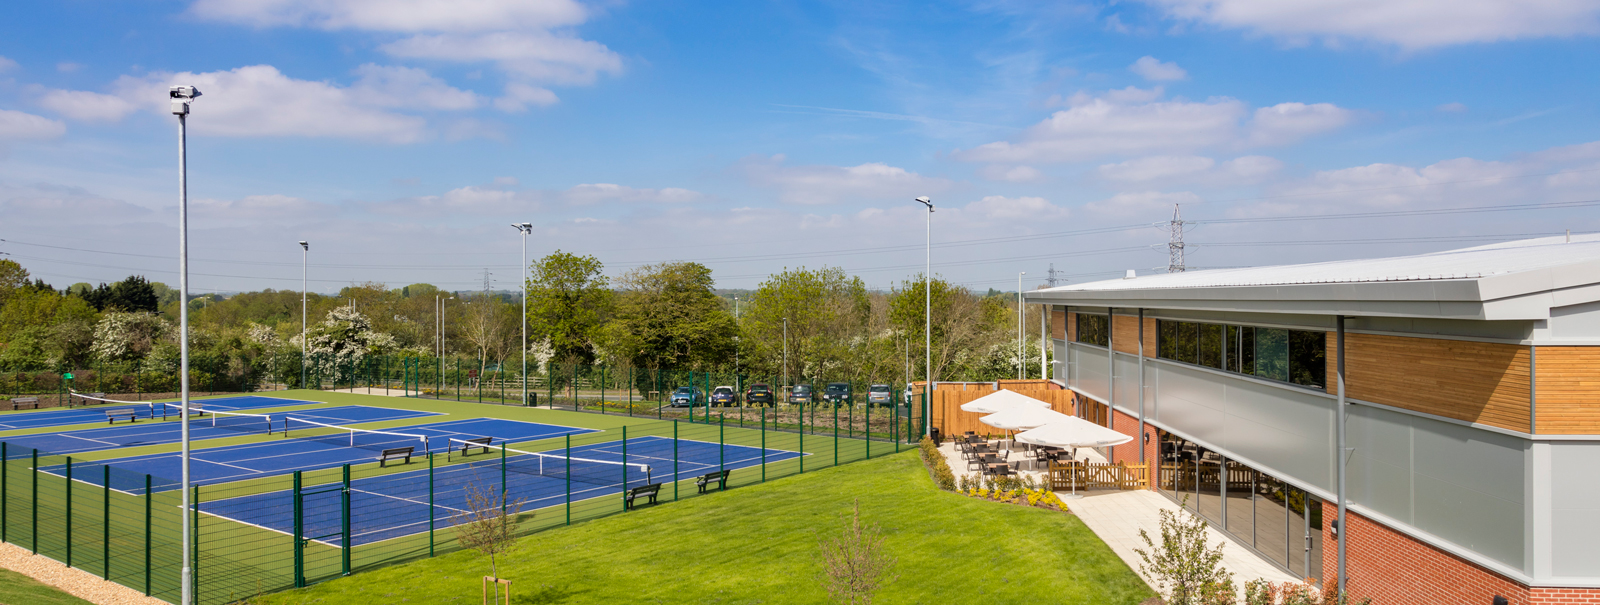 Towers Health & Racquet Club